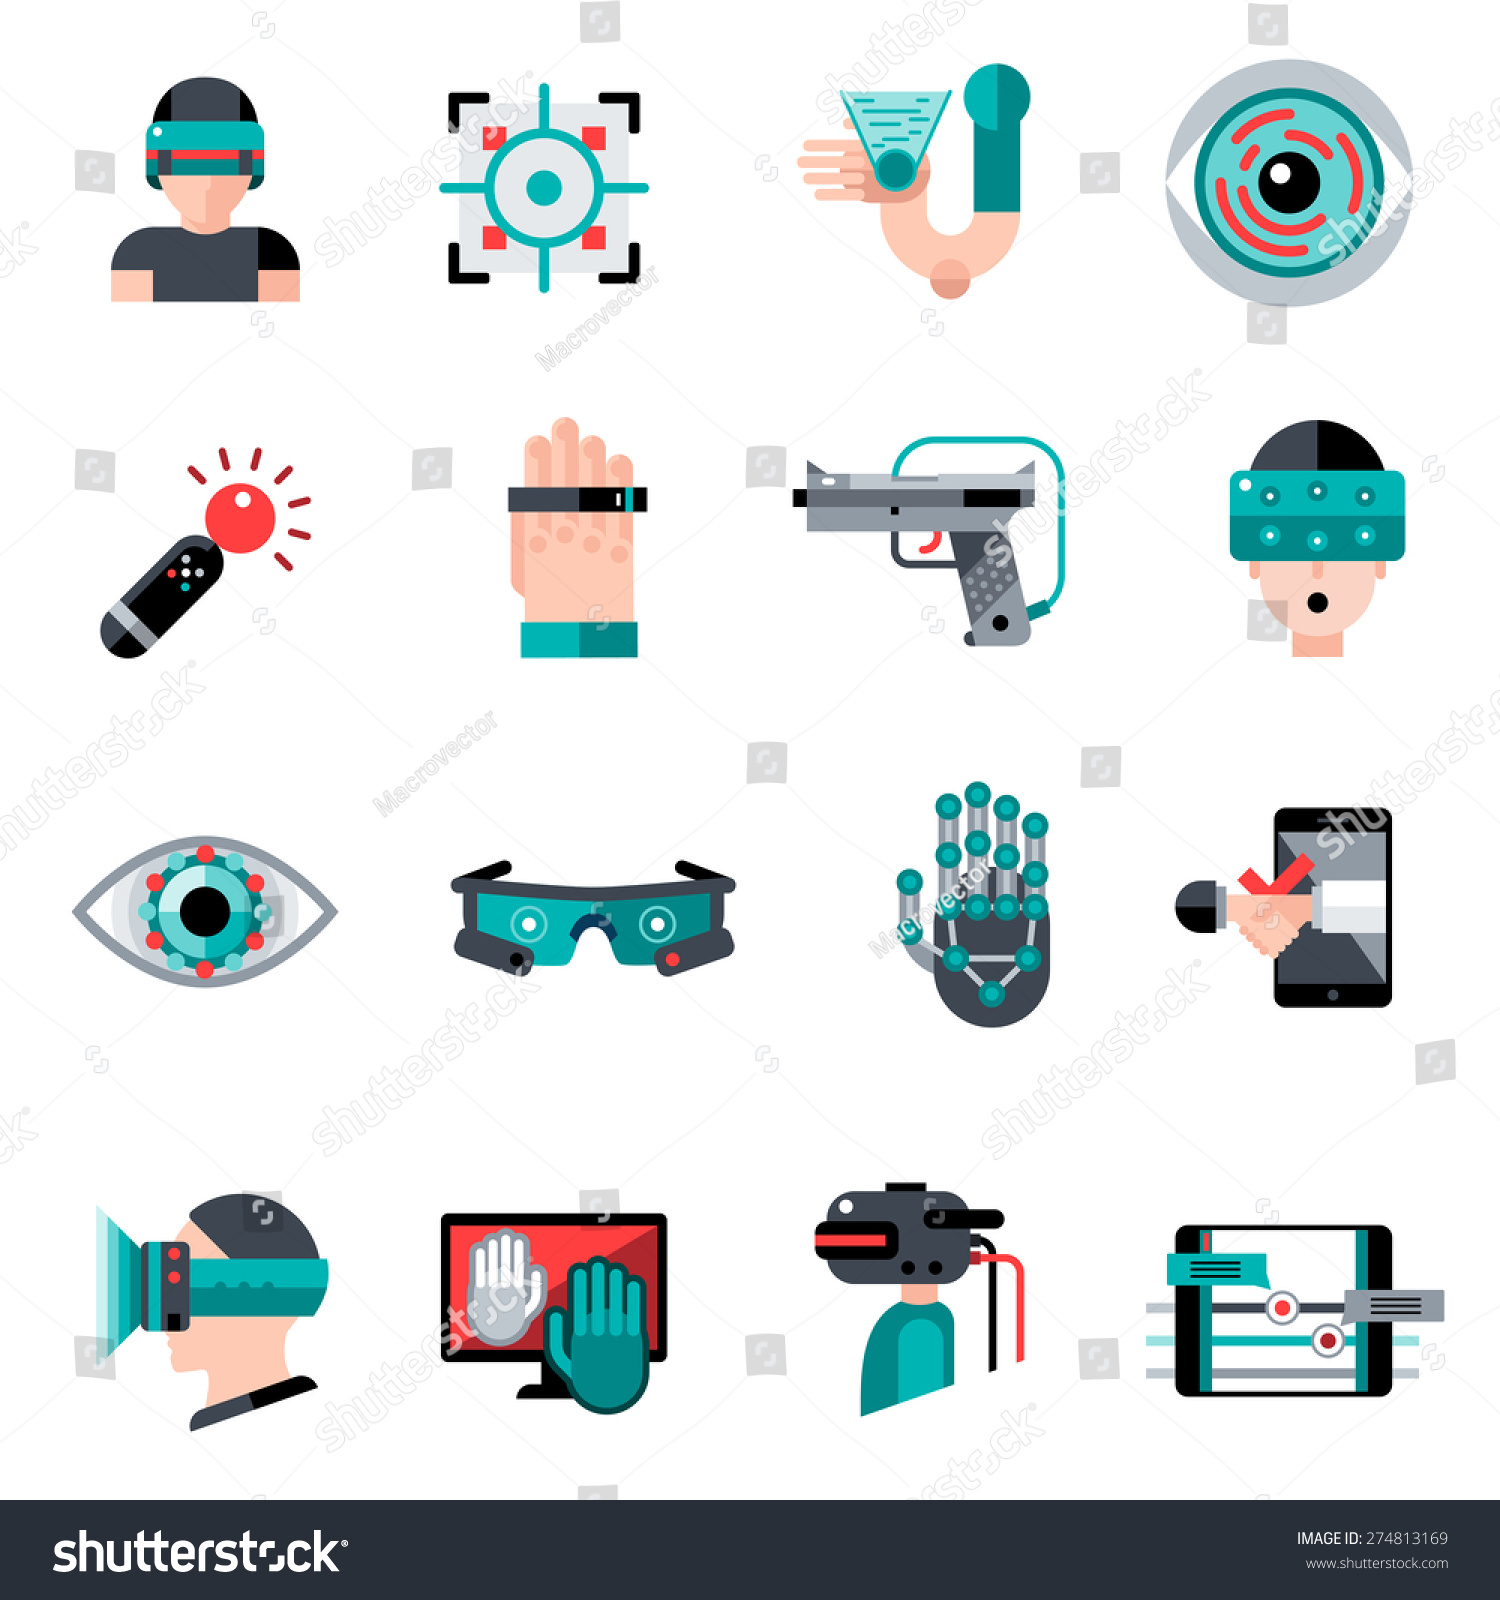 Virtual augmented reality devices and software apps icons Vector image software